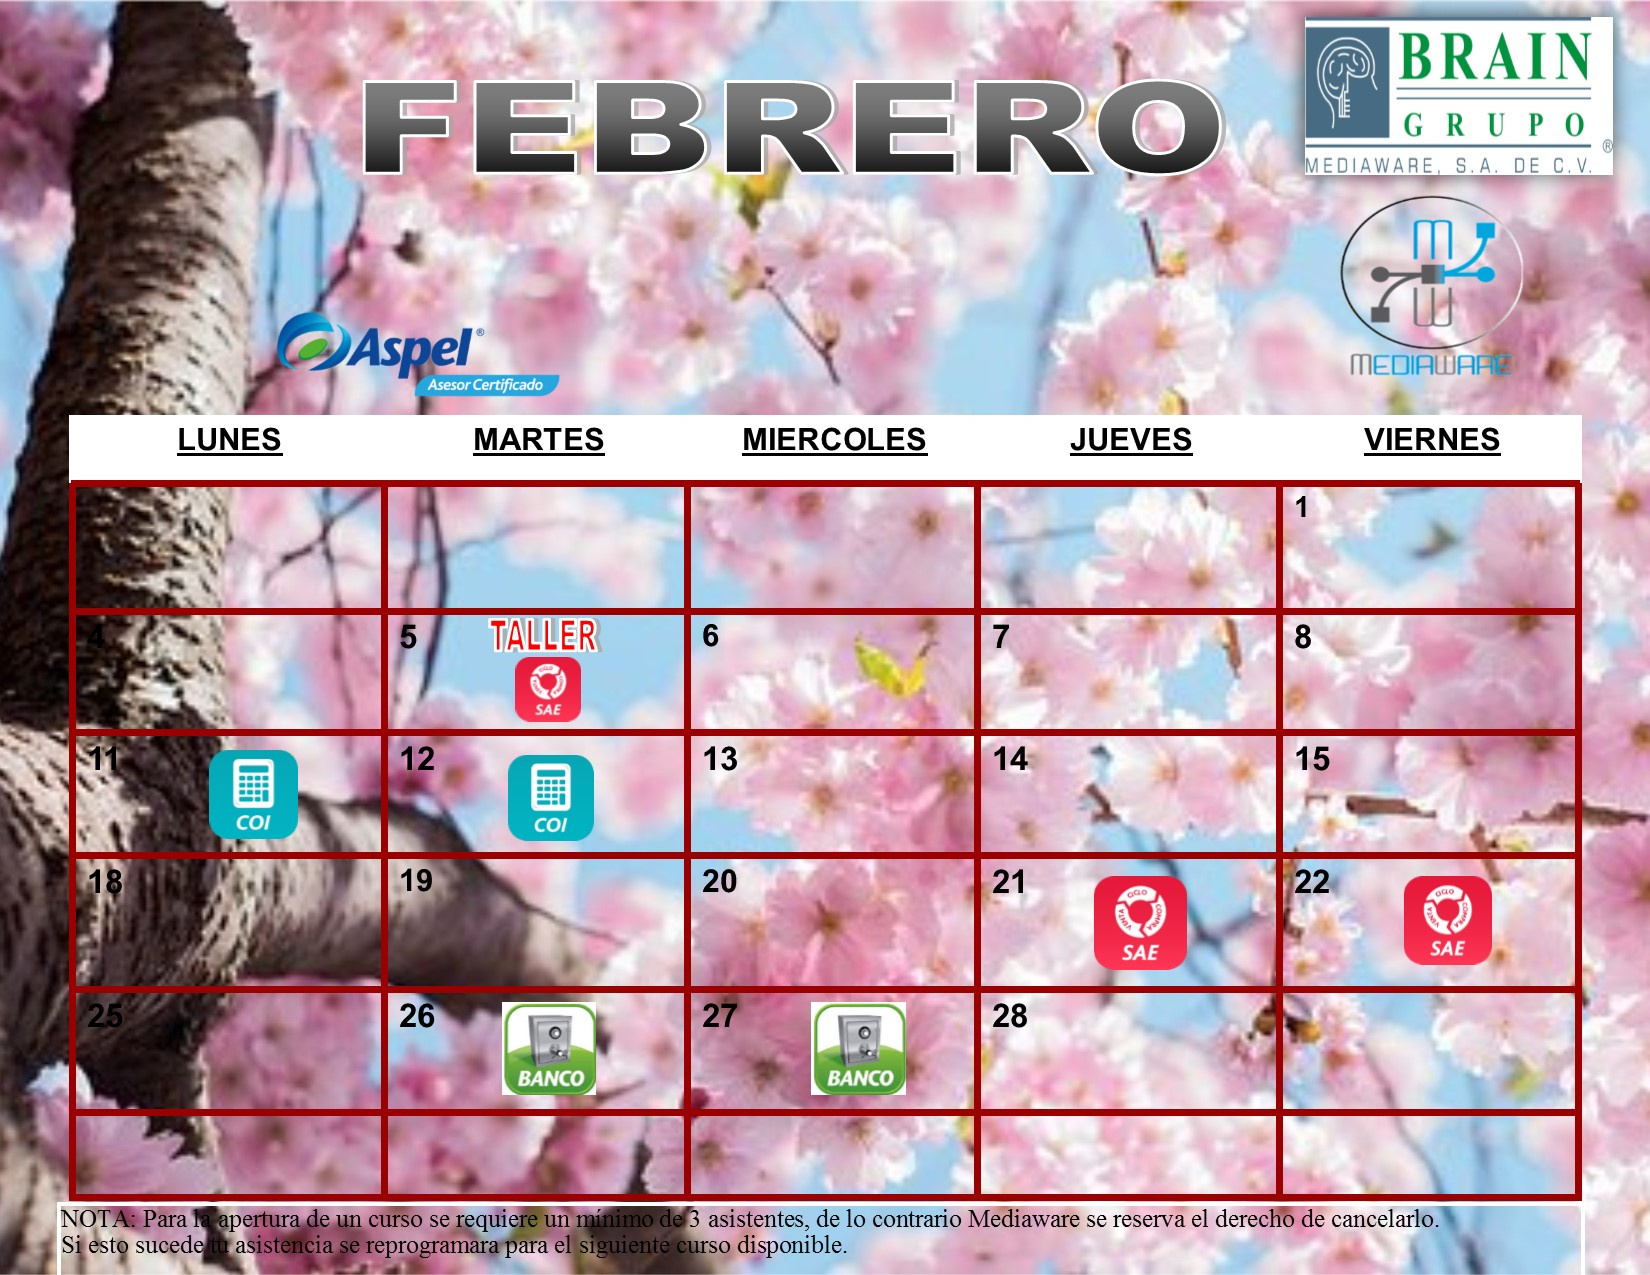 https://0201.nccdn.net/1_2/000/000/0f2/969/Calendario-FEBRERO-1650x1275.jpg